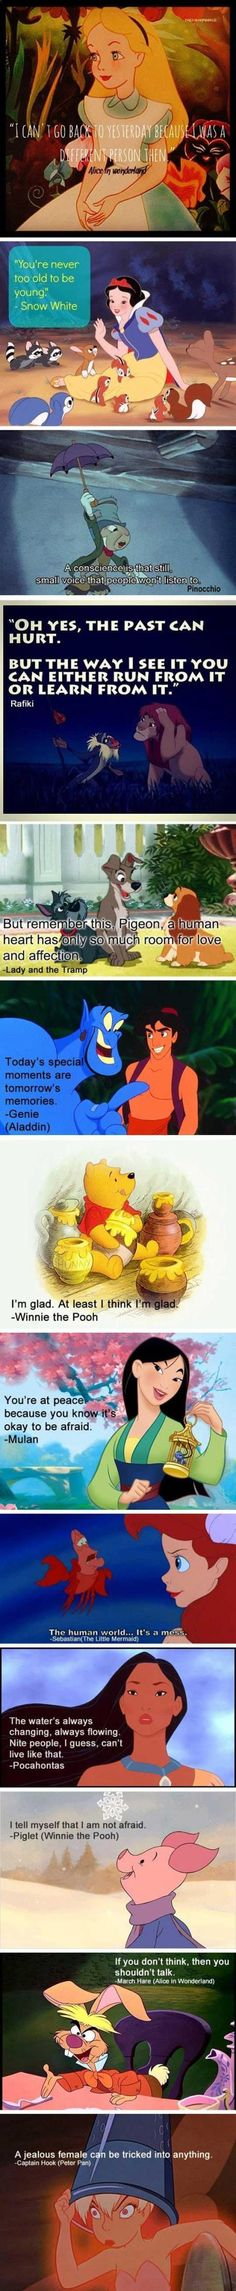 Shockingly profound Disney movies quotes…